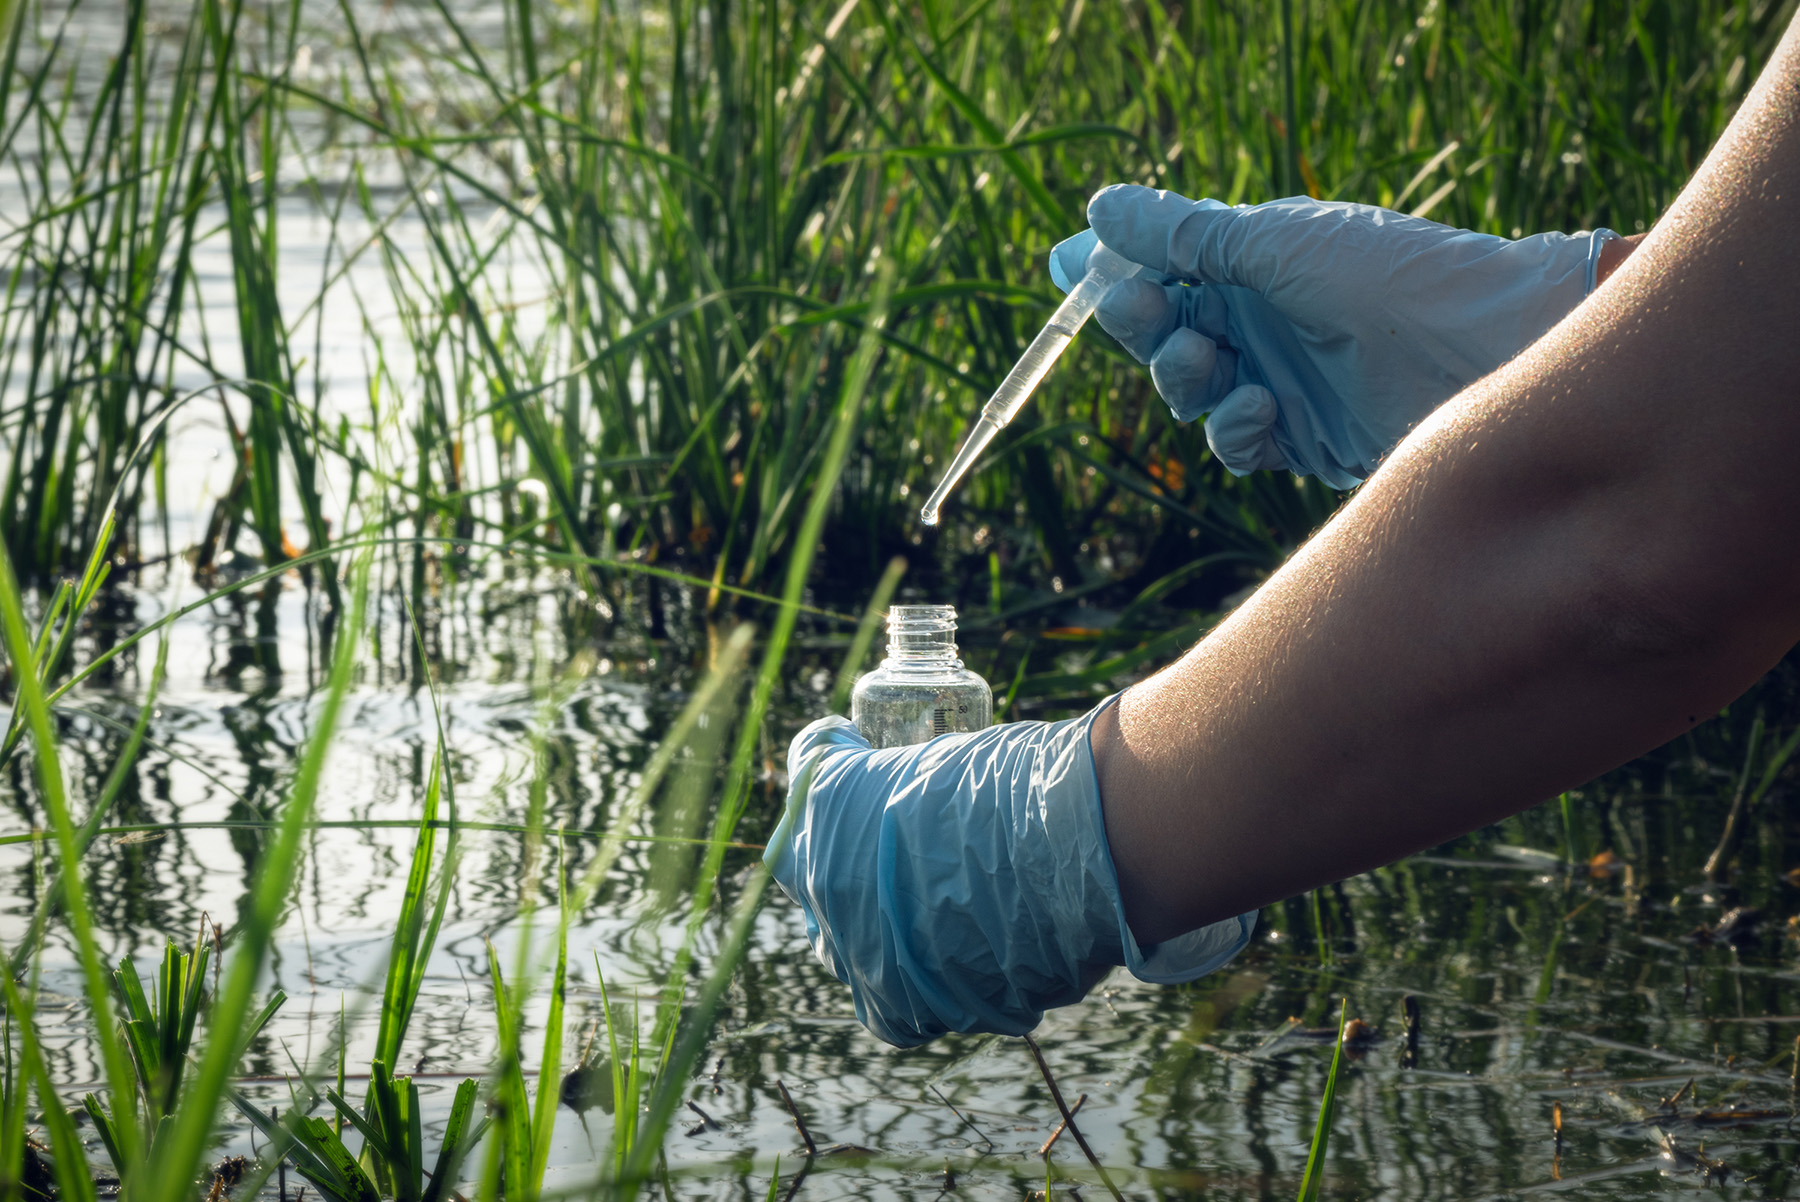 Image of sample collection from a body of water with green plants, the person is wearing blue gloves using a plastic pipette